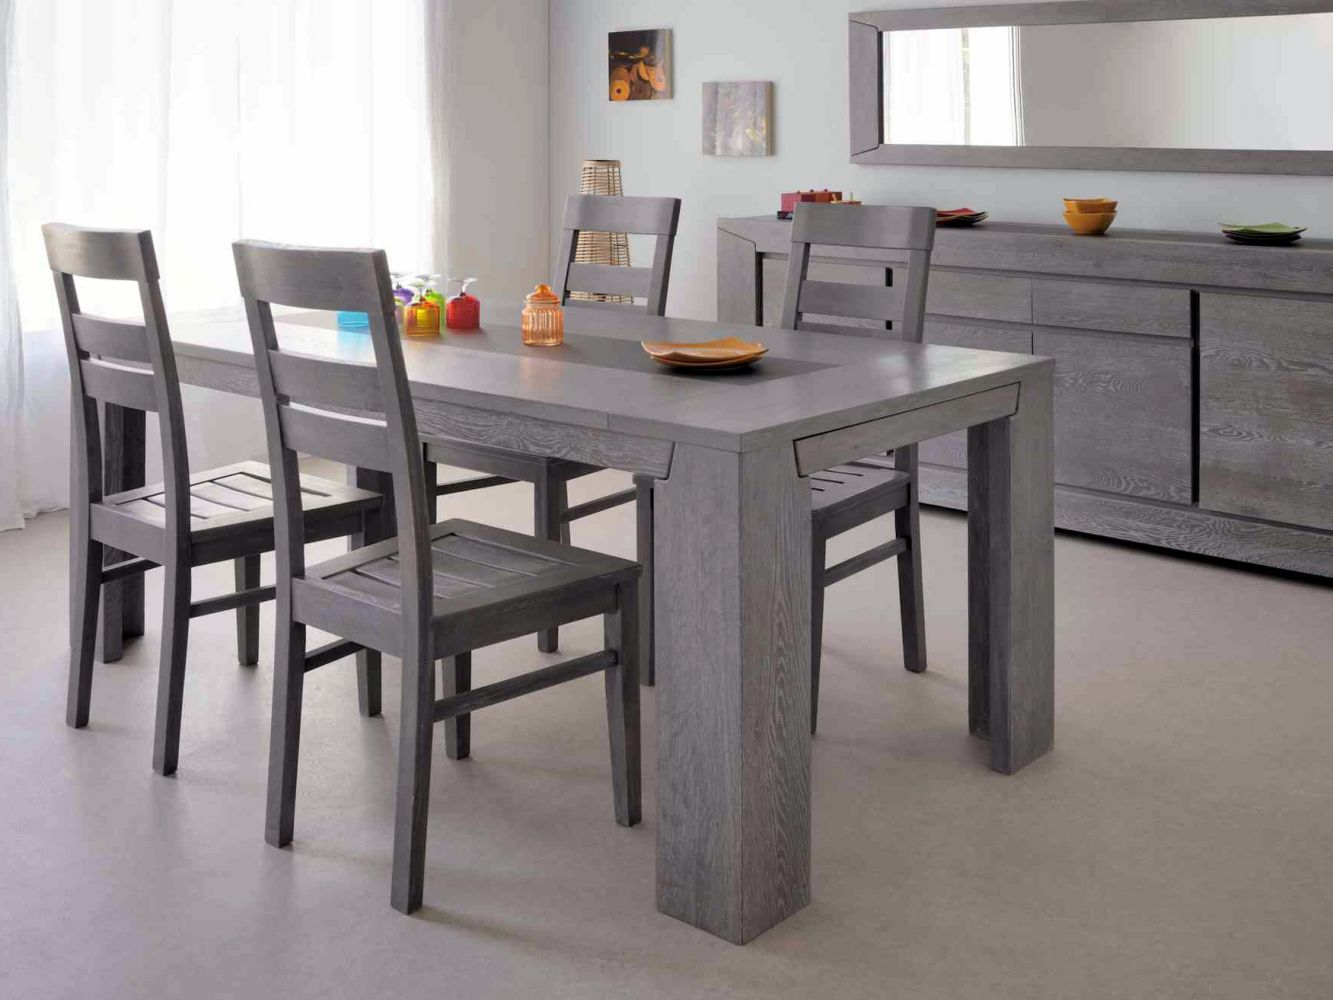 Salle a manger compl te conforama table carr e meuble et for Table salle a manger design conforama